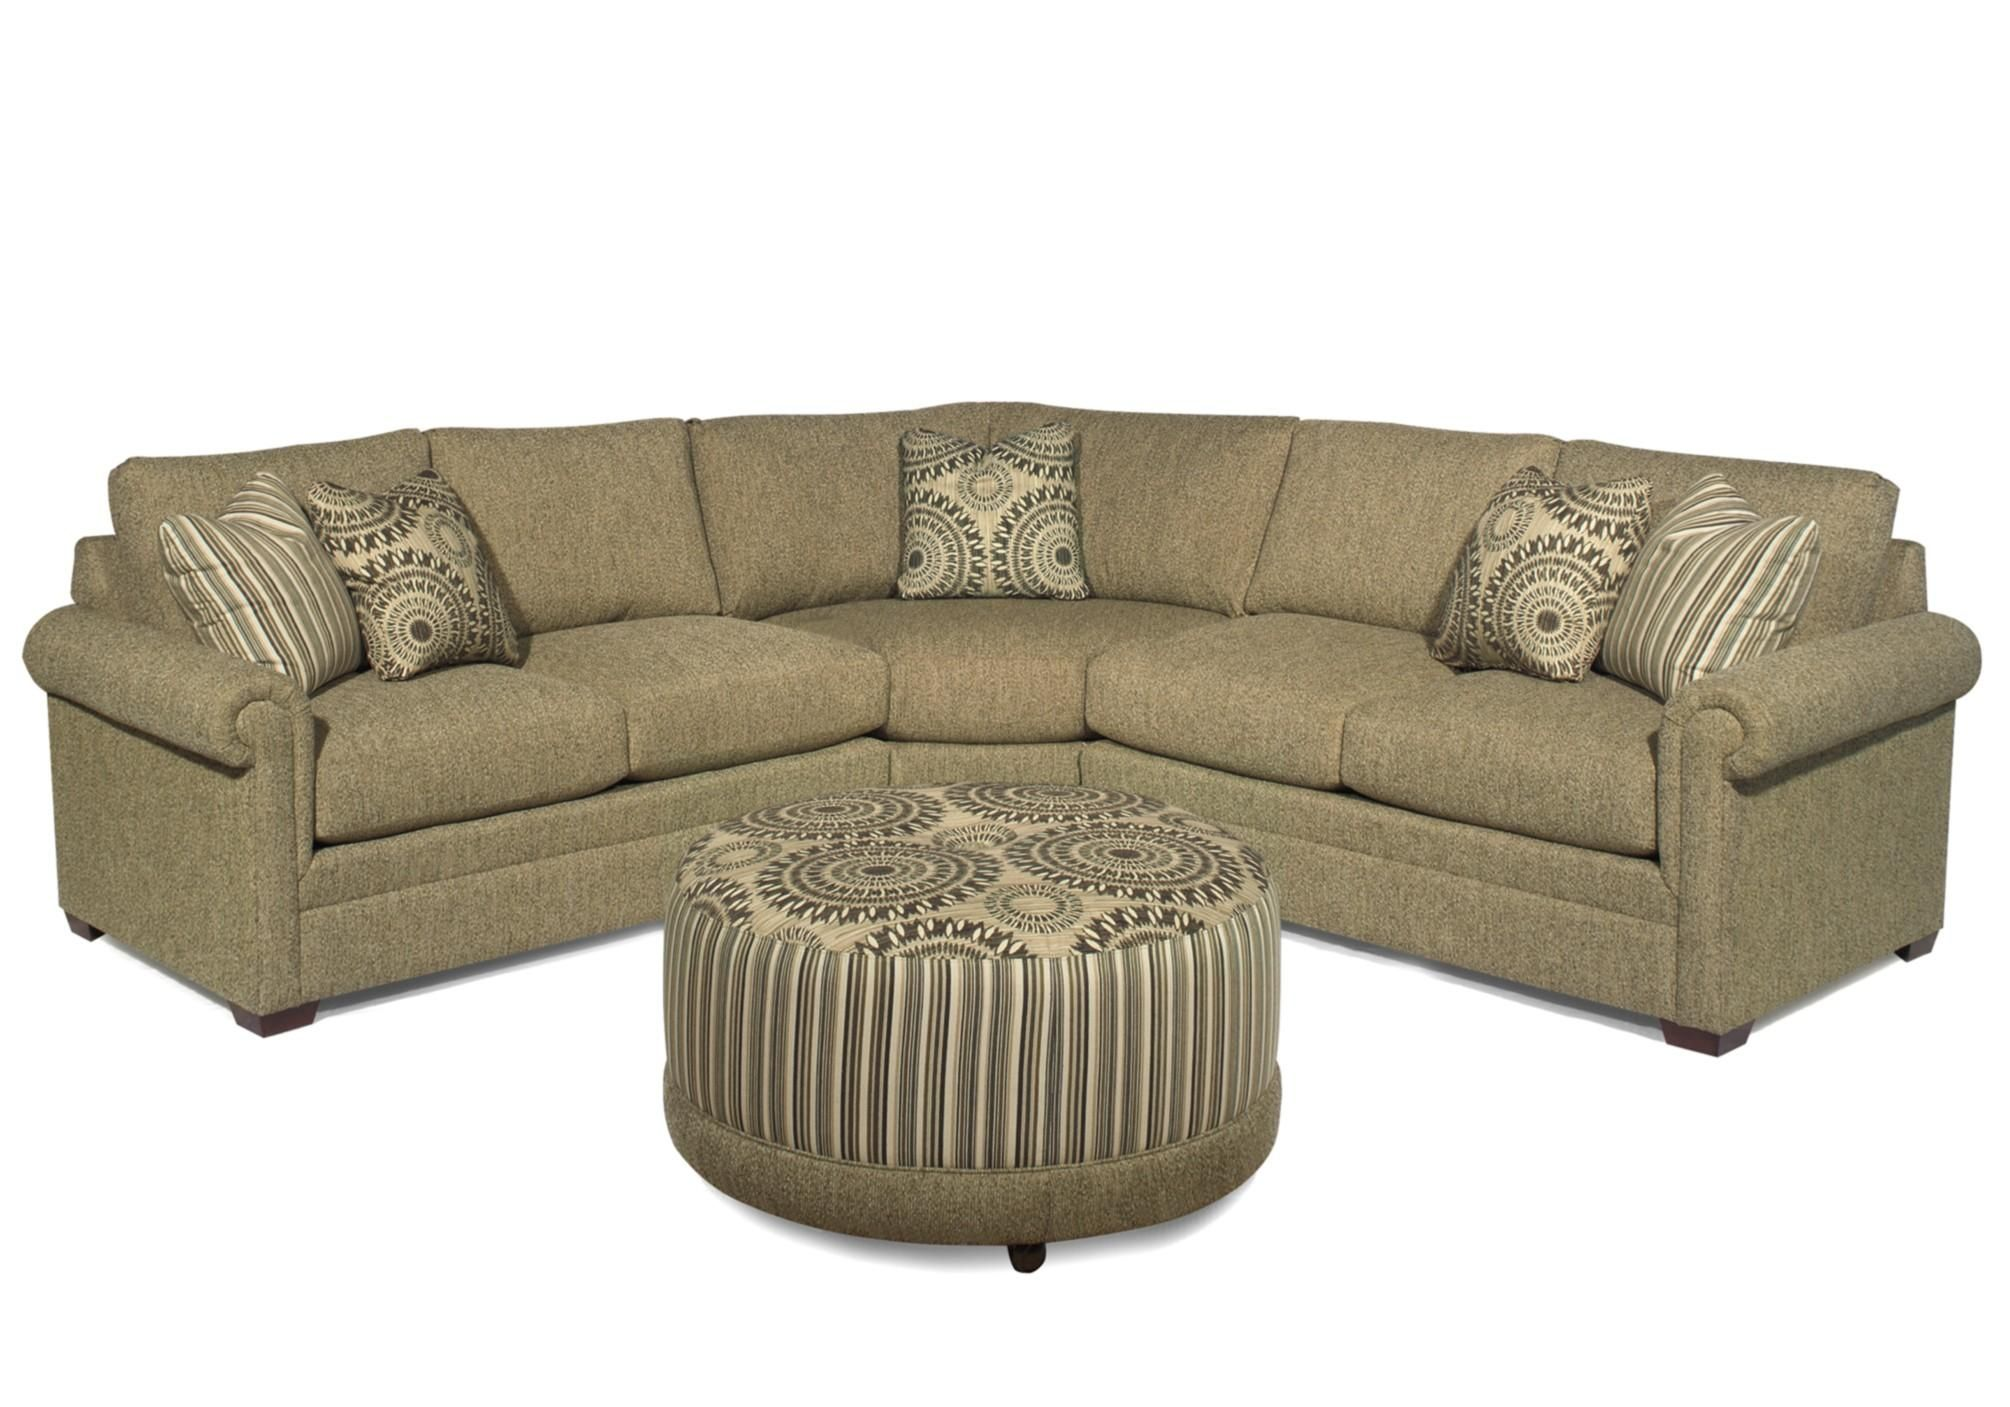 f9 design options customizable 3 piece sectional with pie wedge by rh pinterest com